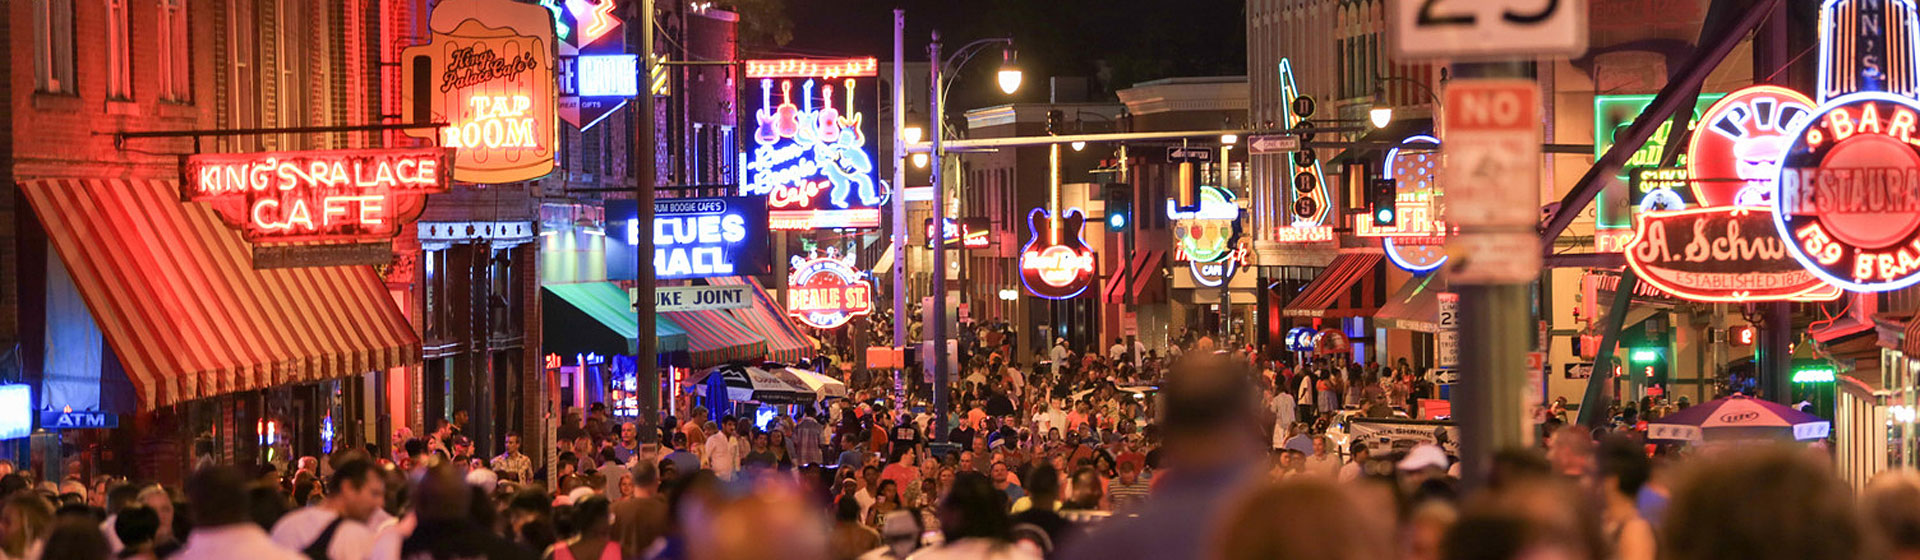 Beale Street i Memphis, Tennessee.